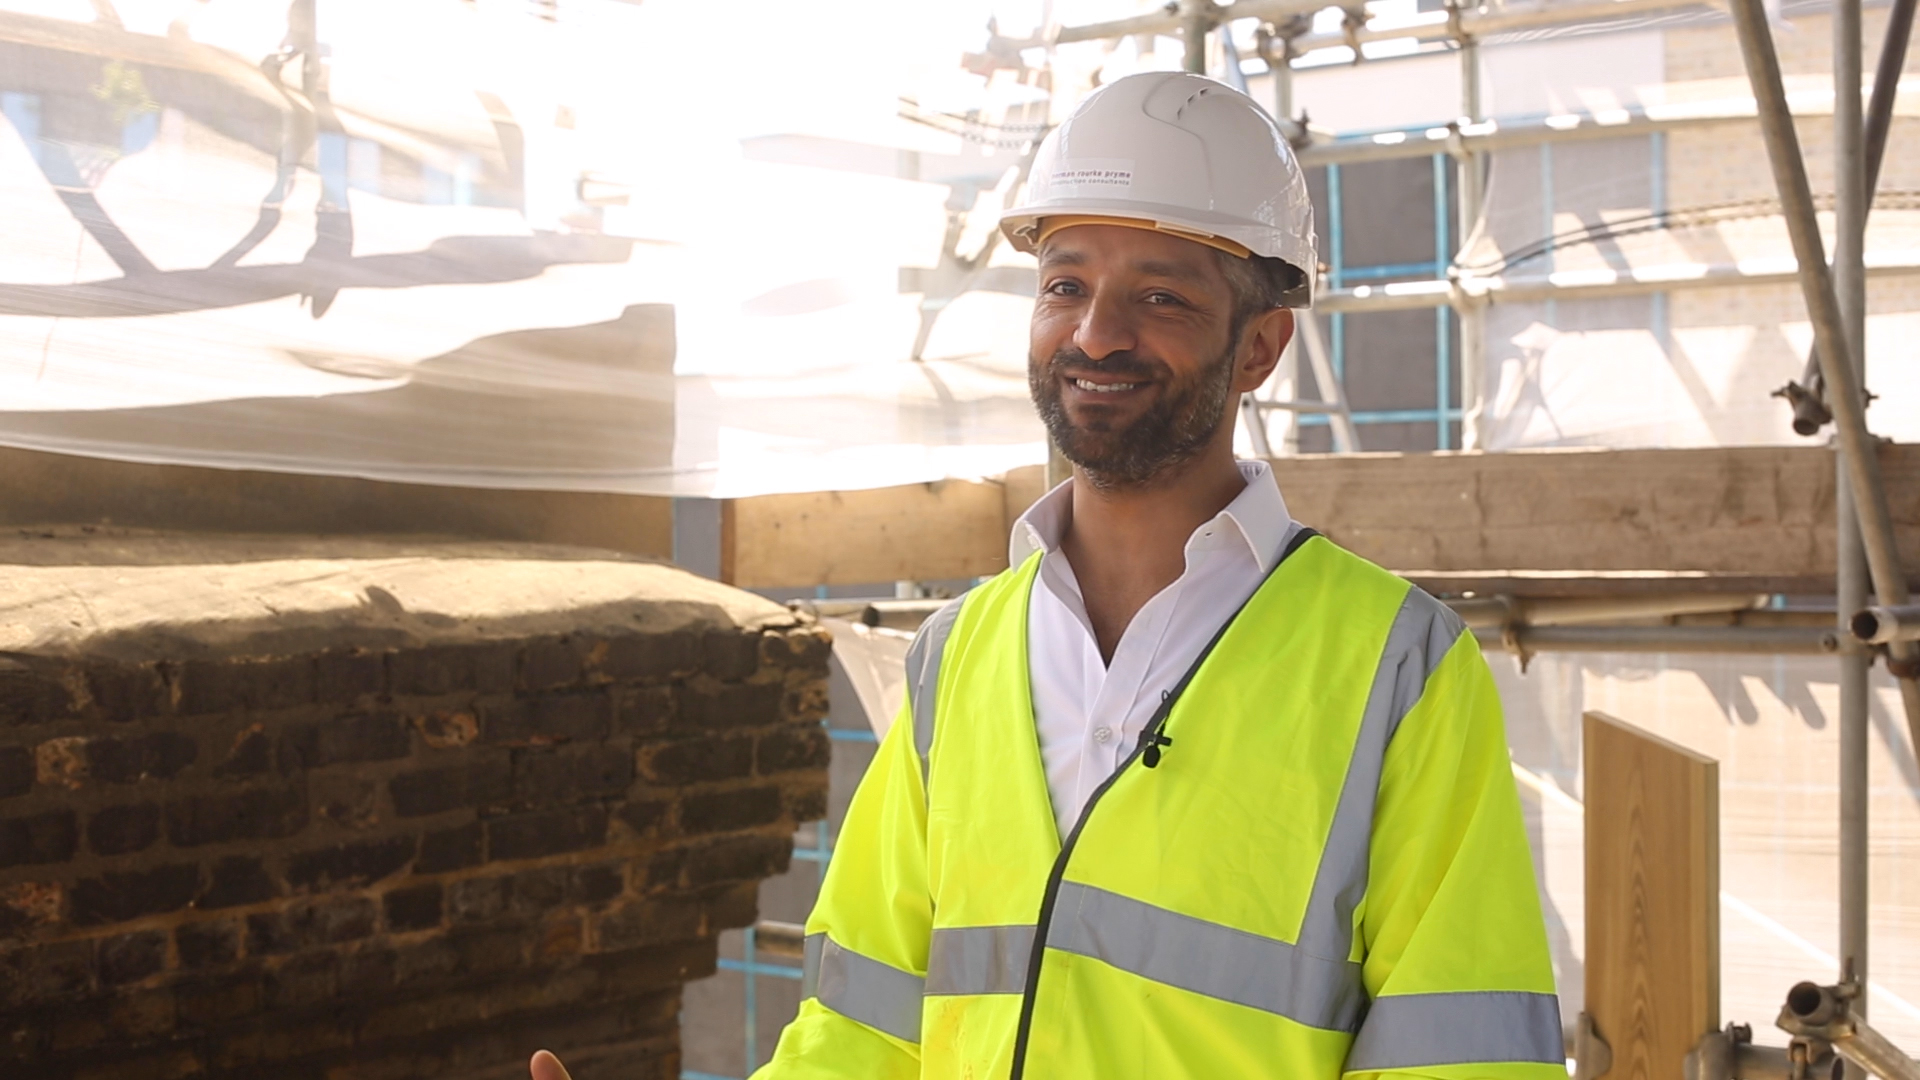 Video thumbnail. Man wearing PPE on building site